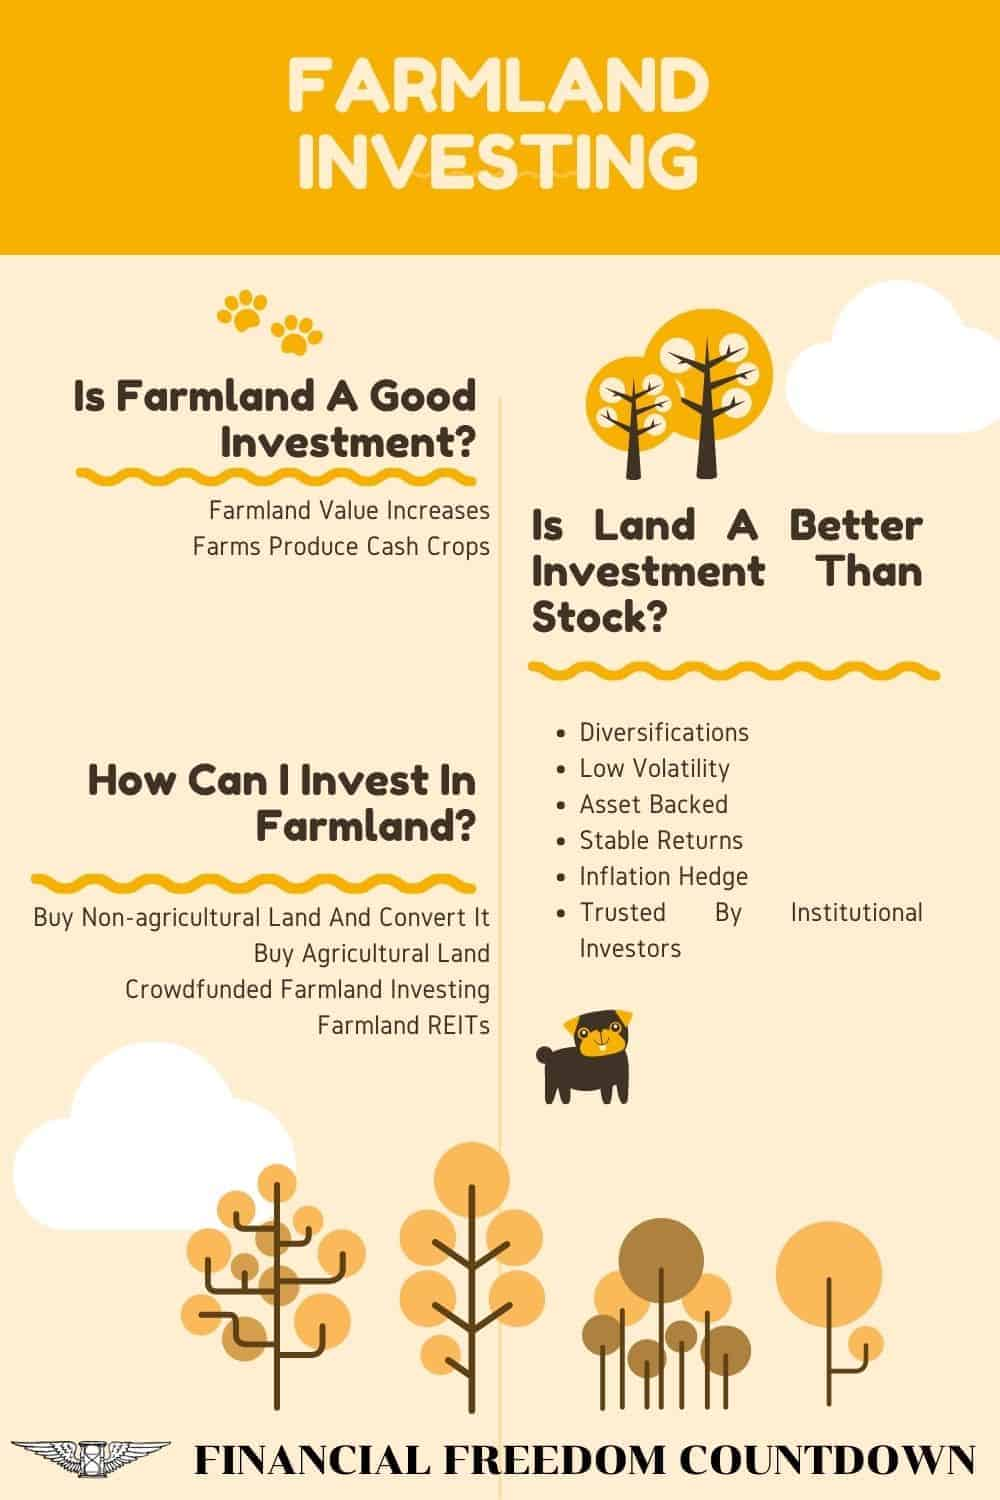 This is a complete guide to farmland investing. Learn what the benefits are and how to get started investing in farmland.